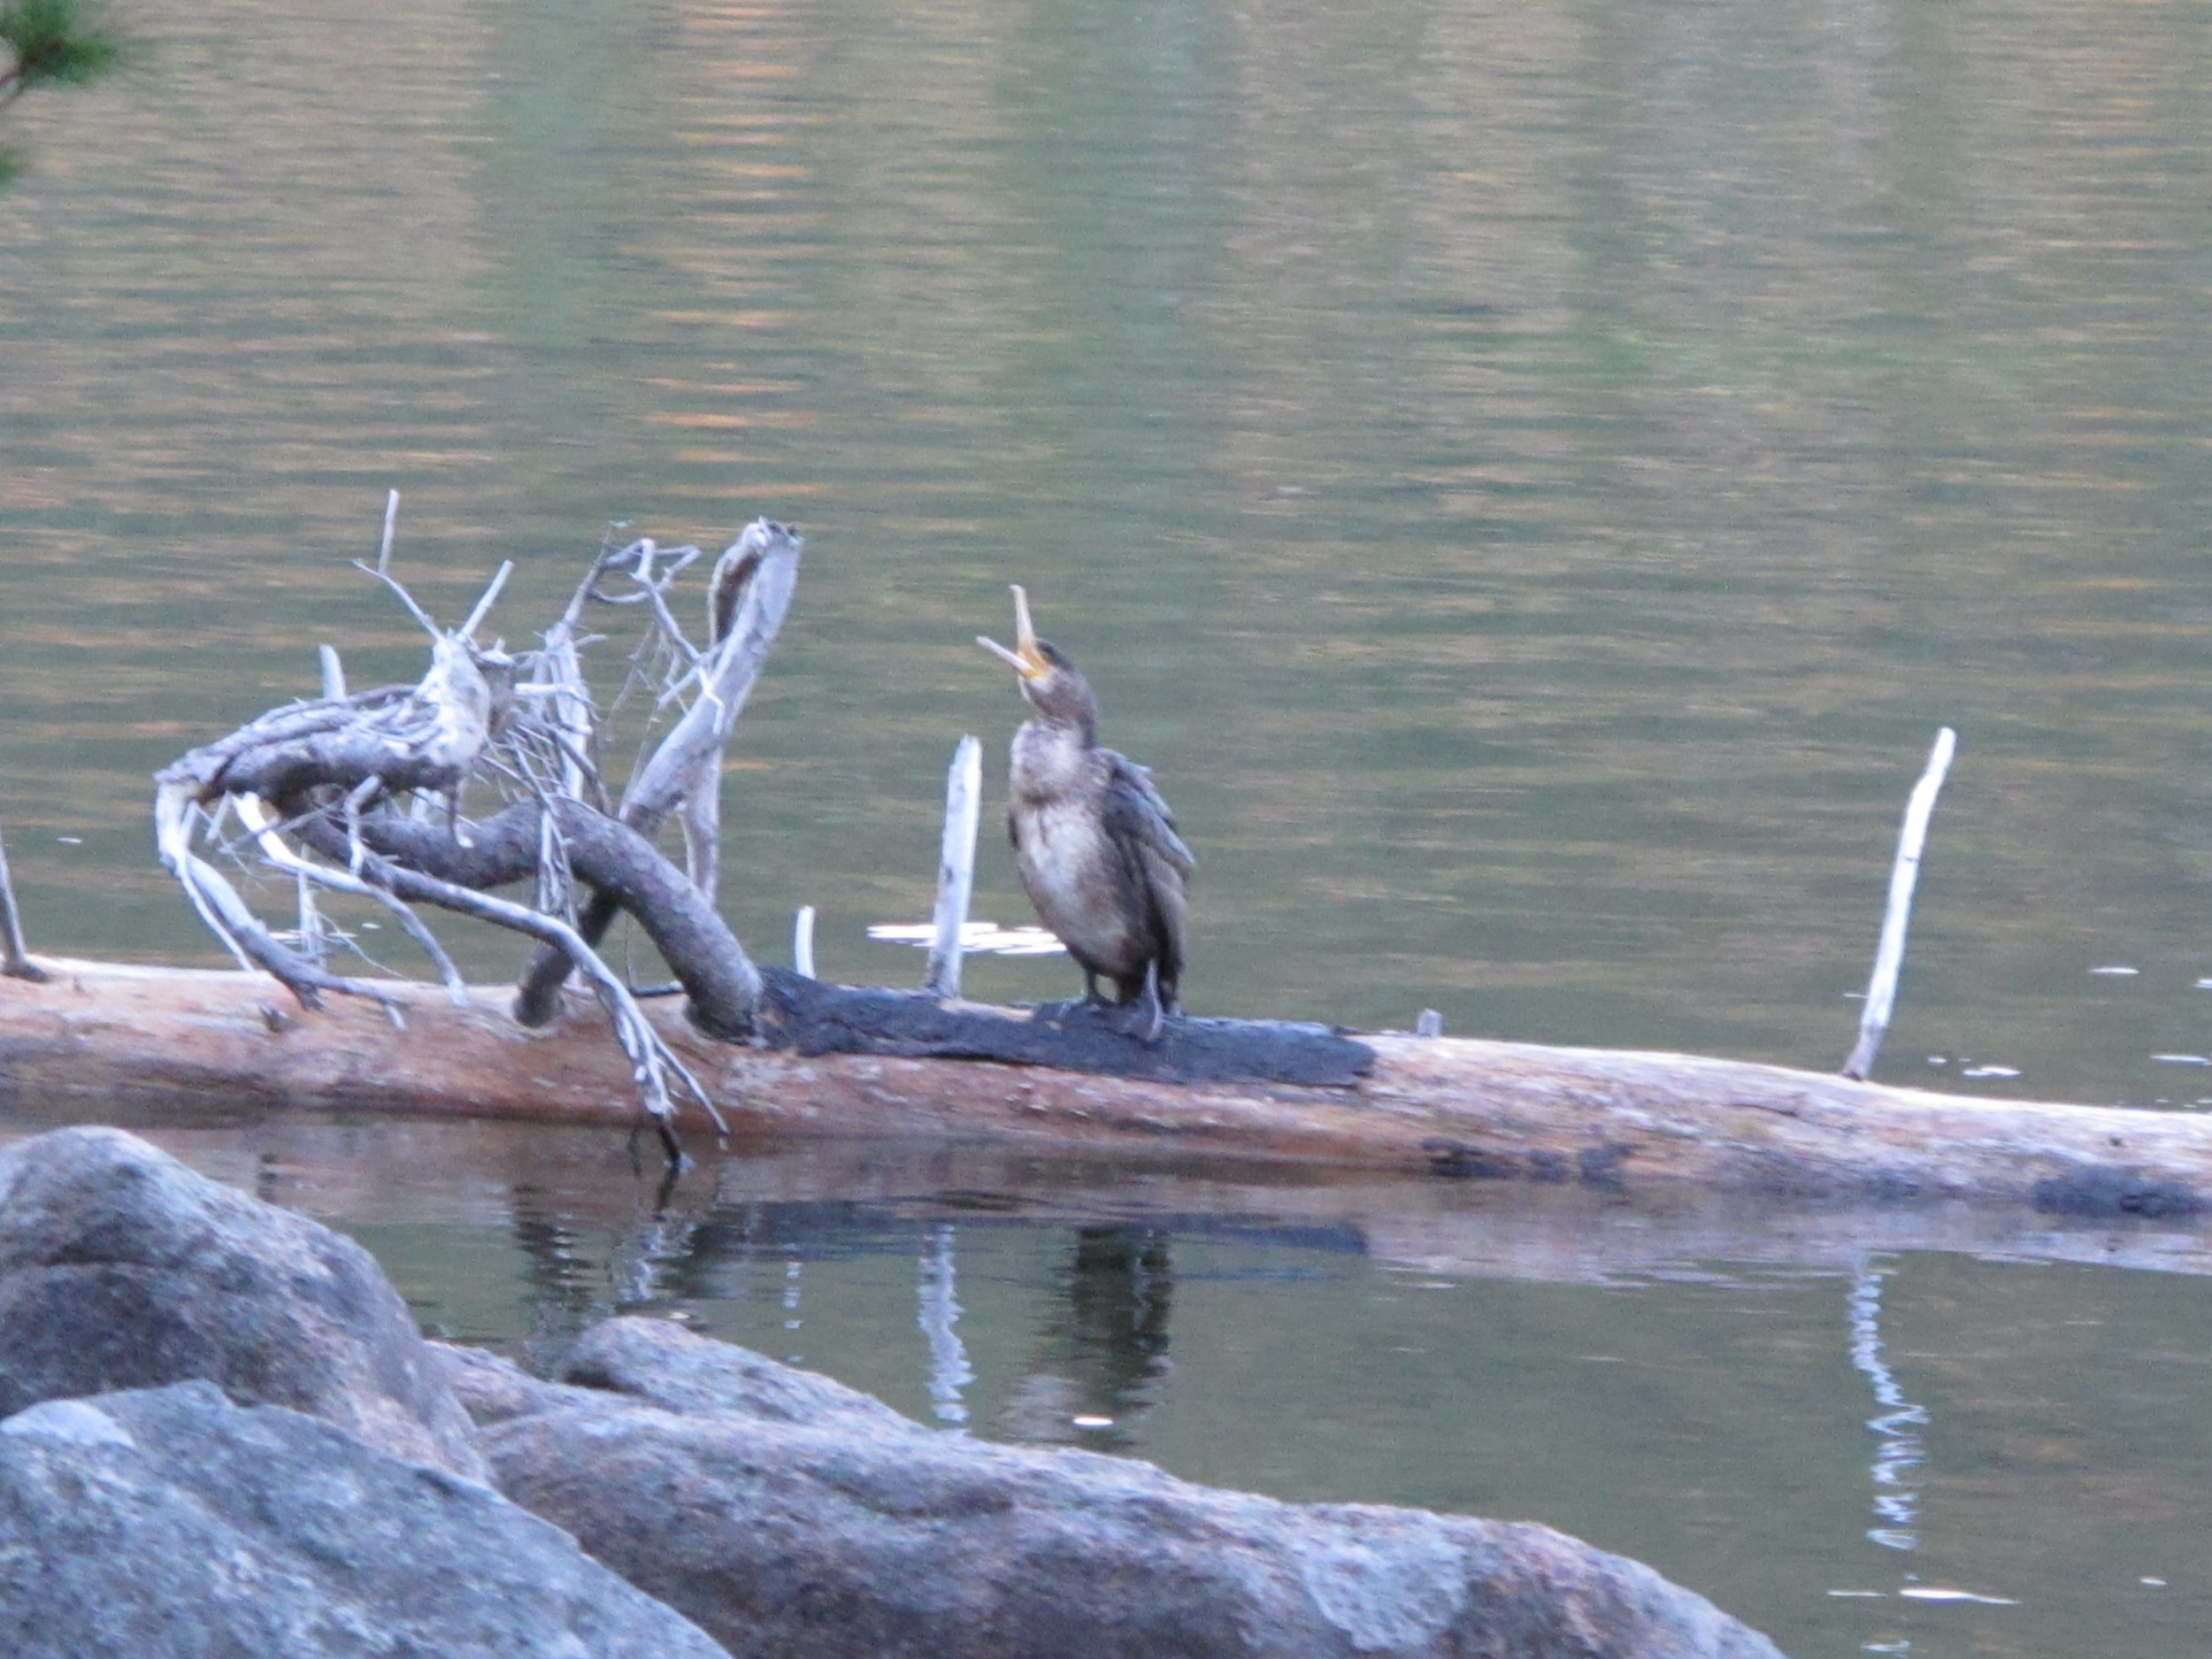 Back in Maine: A young cormorant at dusk on Saturday on Jordan Pond.